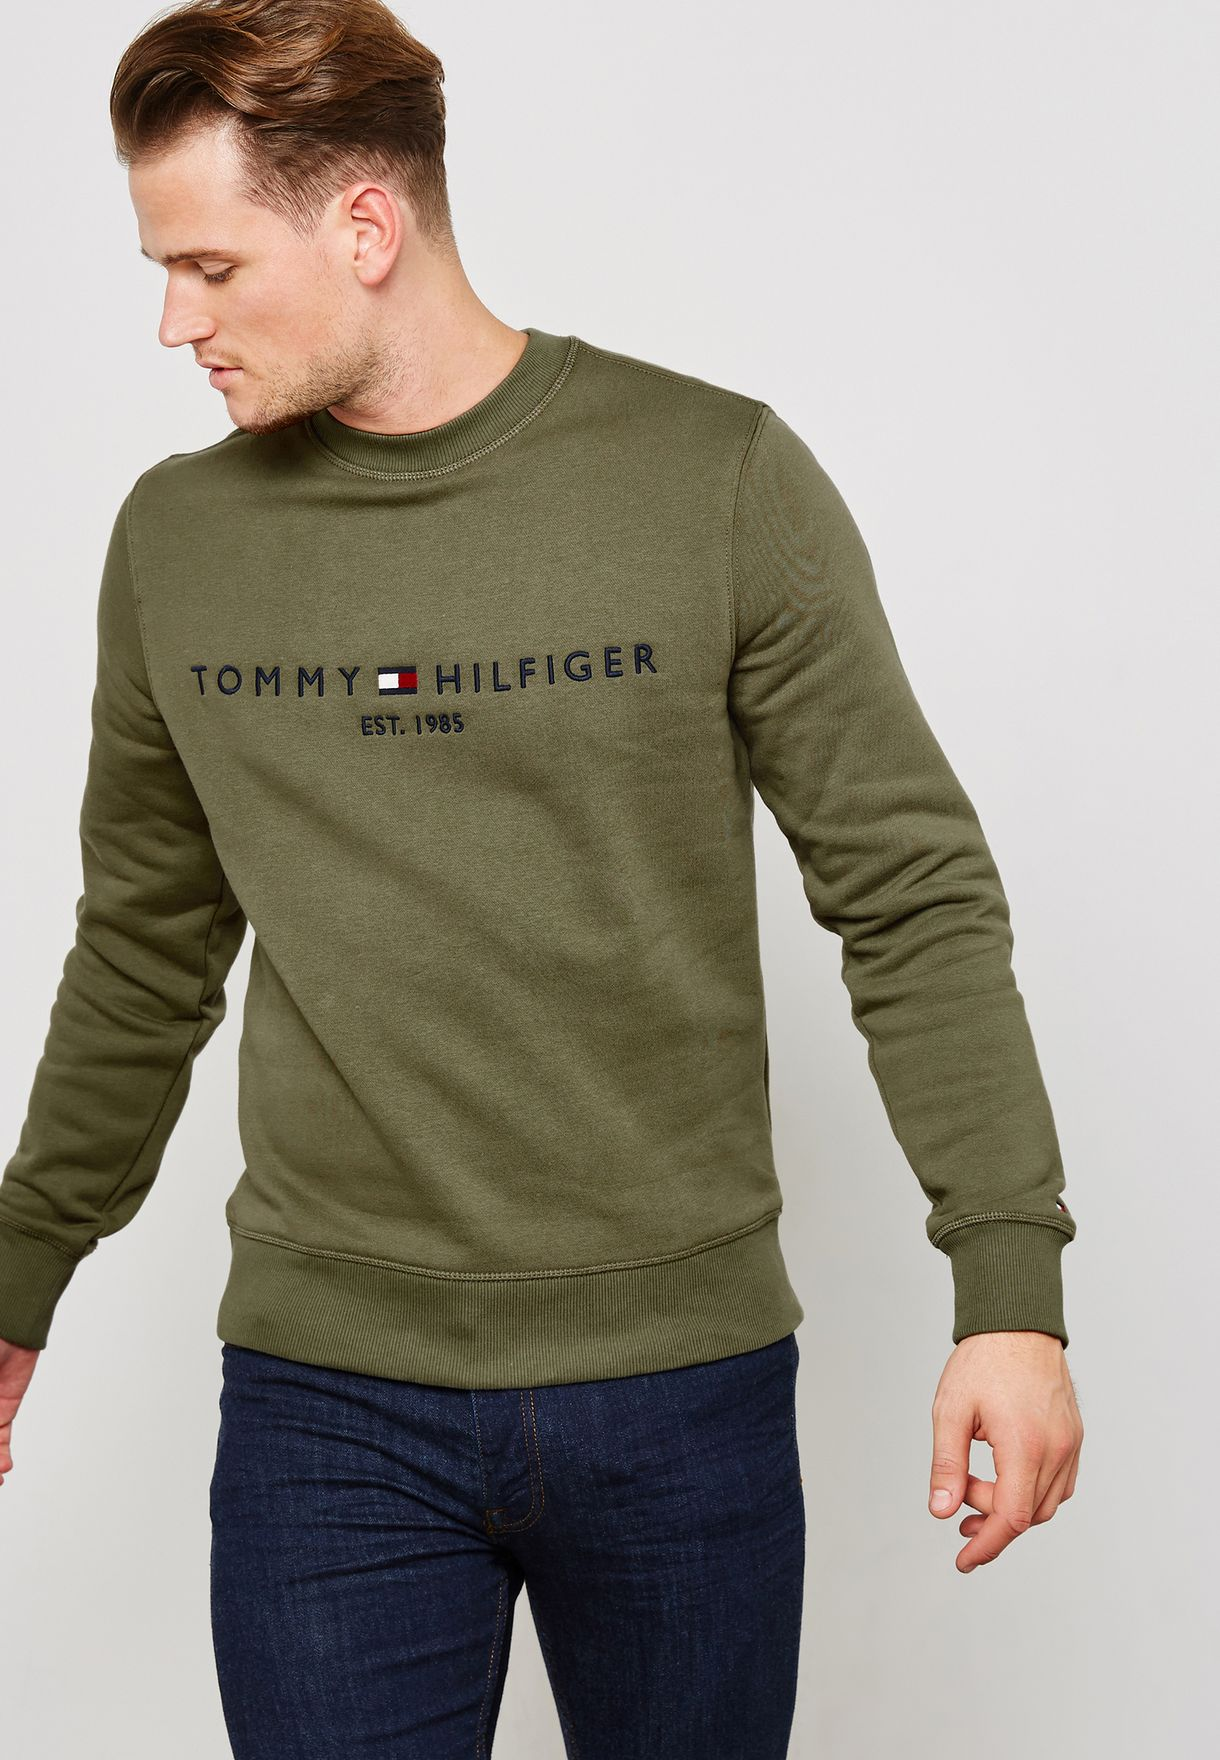 34730a8c Shop Tommy Hilfiger green Logo Sweatshirt MW0MW07948304 for Men in ...